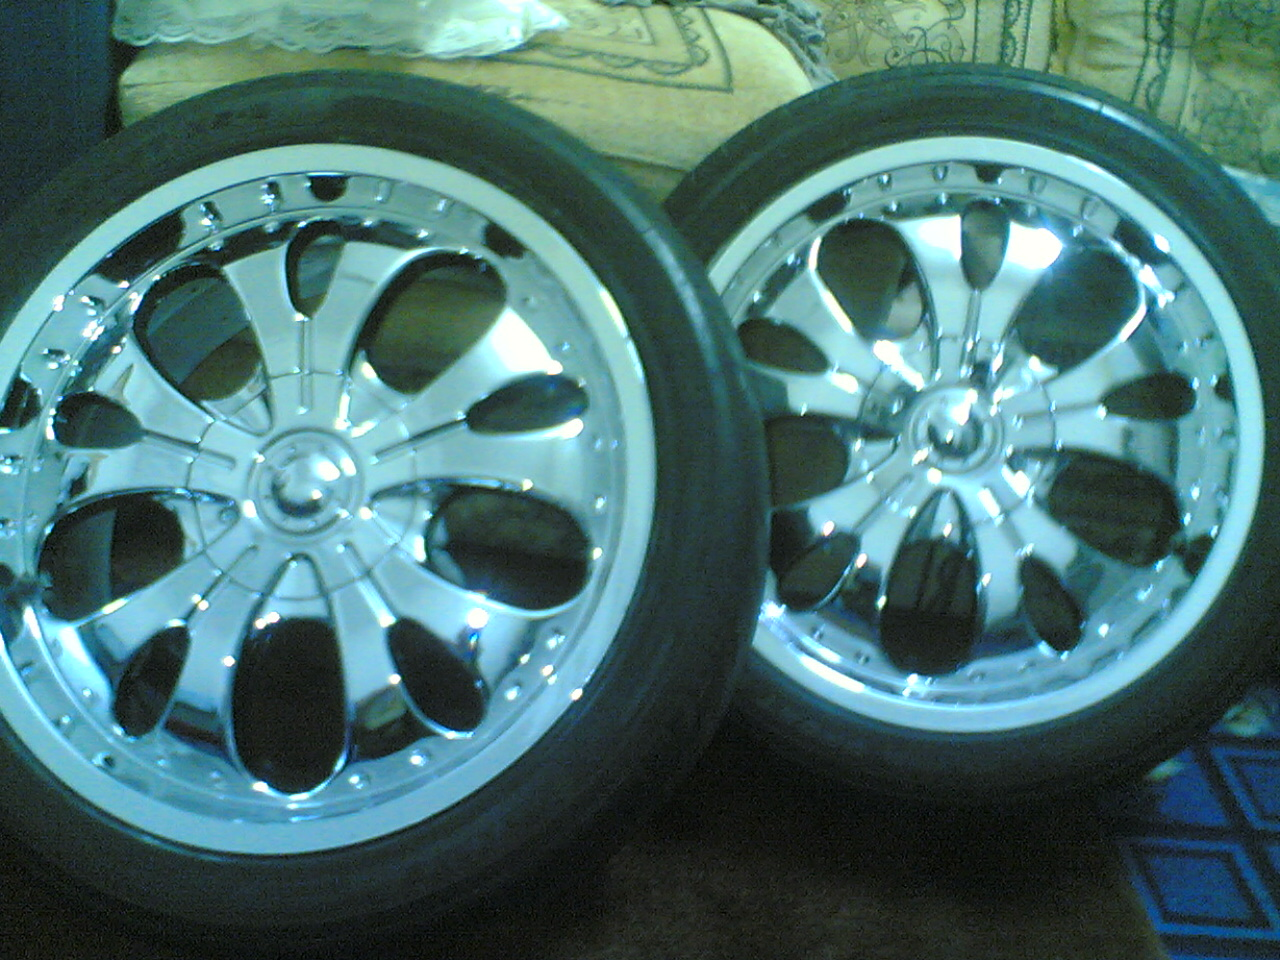 VELG RACING GAUL =====